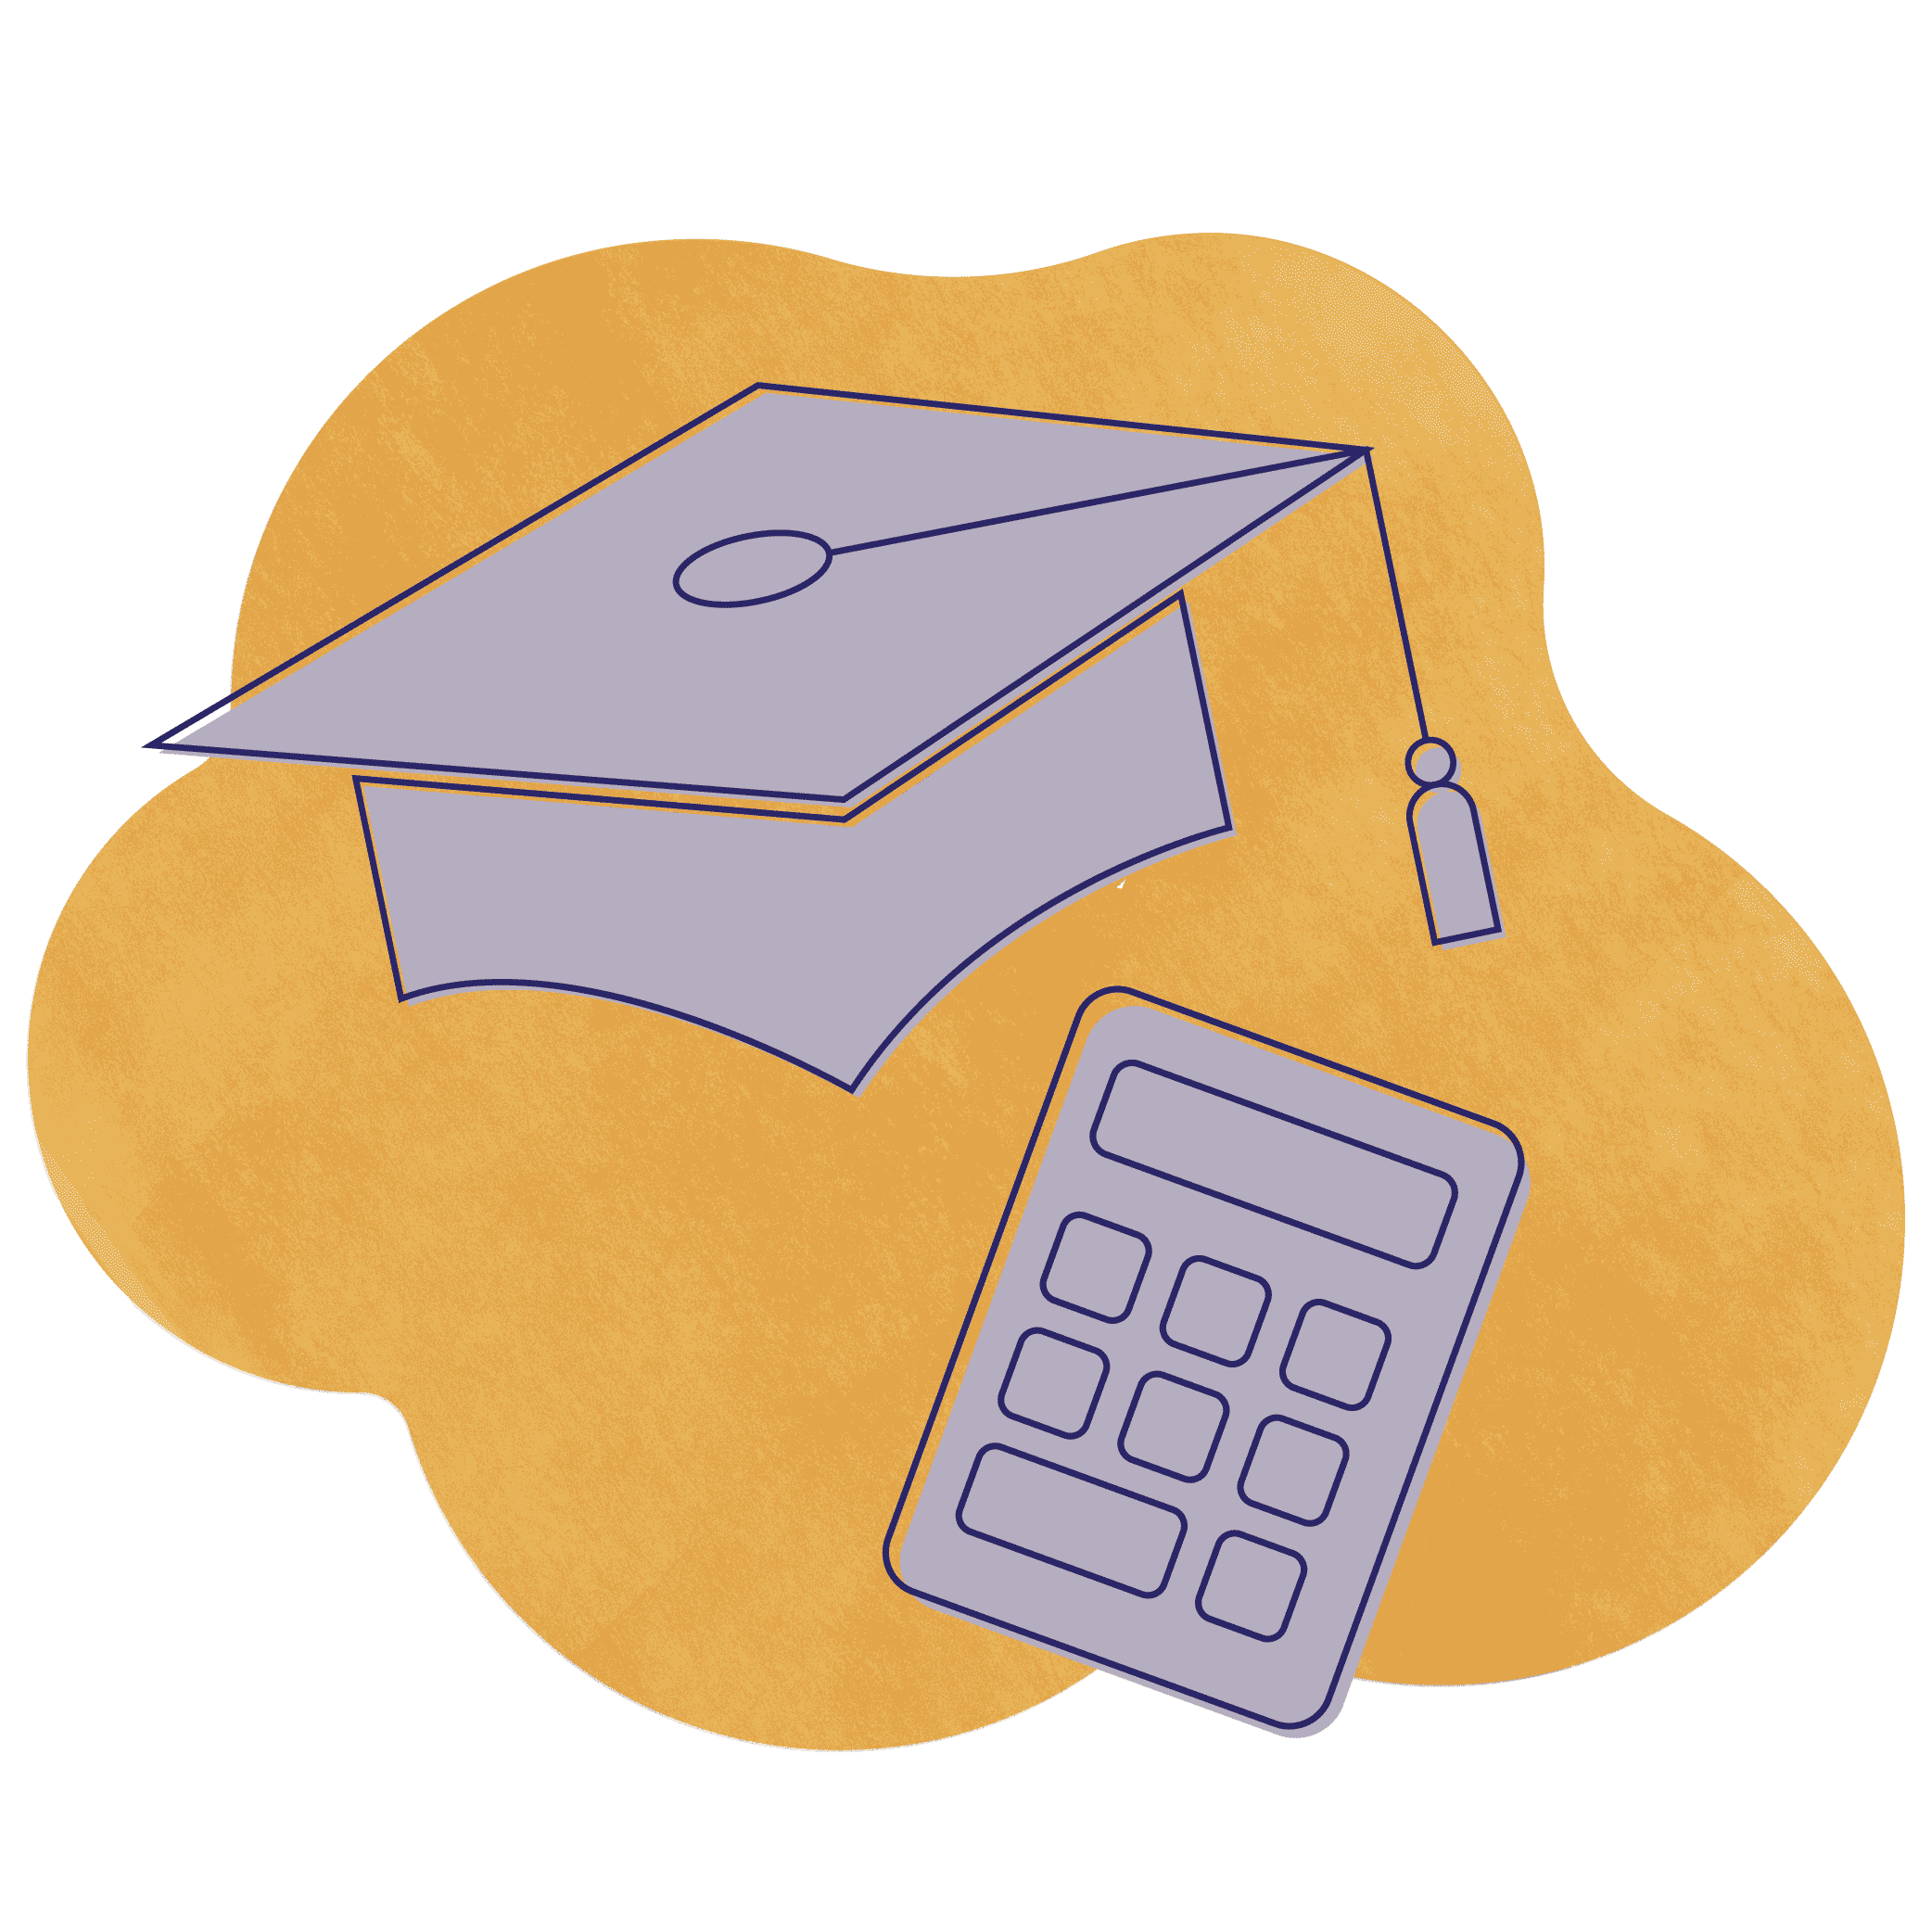 An illustration of teachers and accountants showing a purple graduation cap and a purple calculator over a gold textured shape.